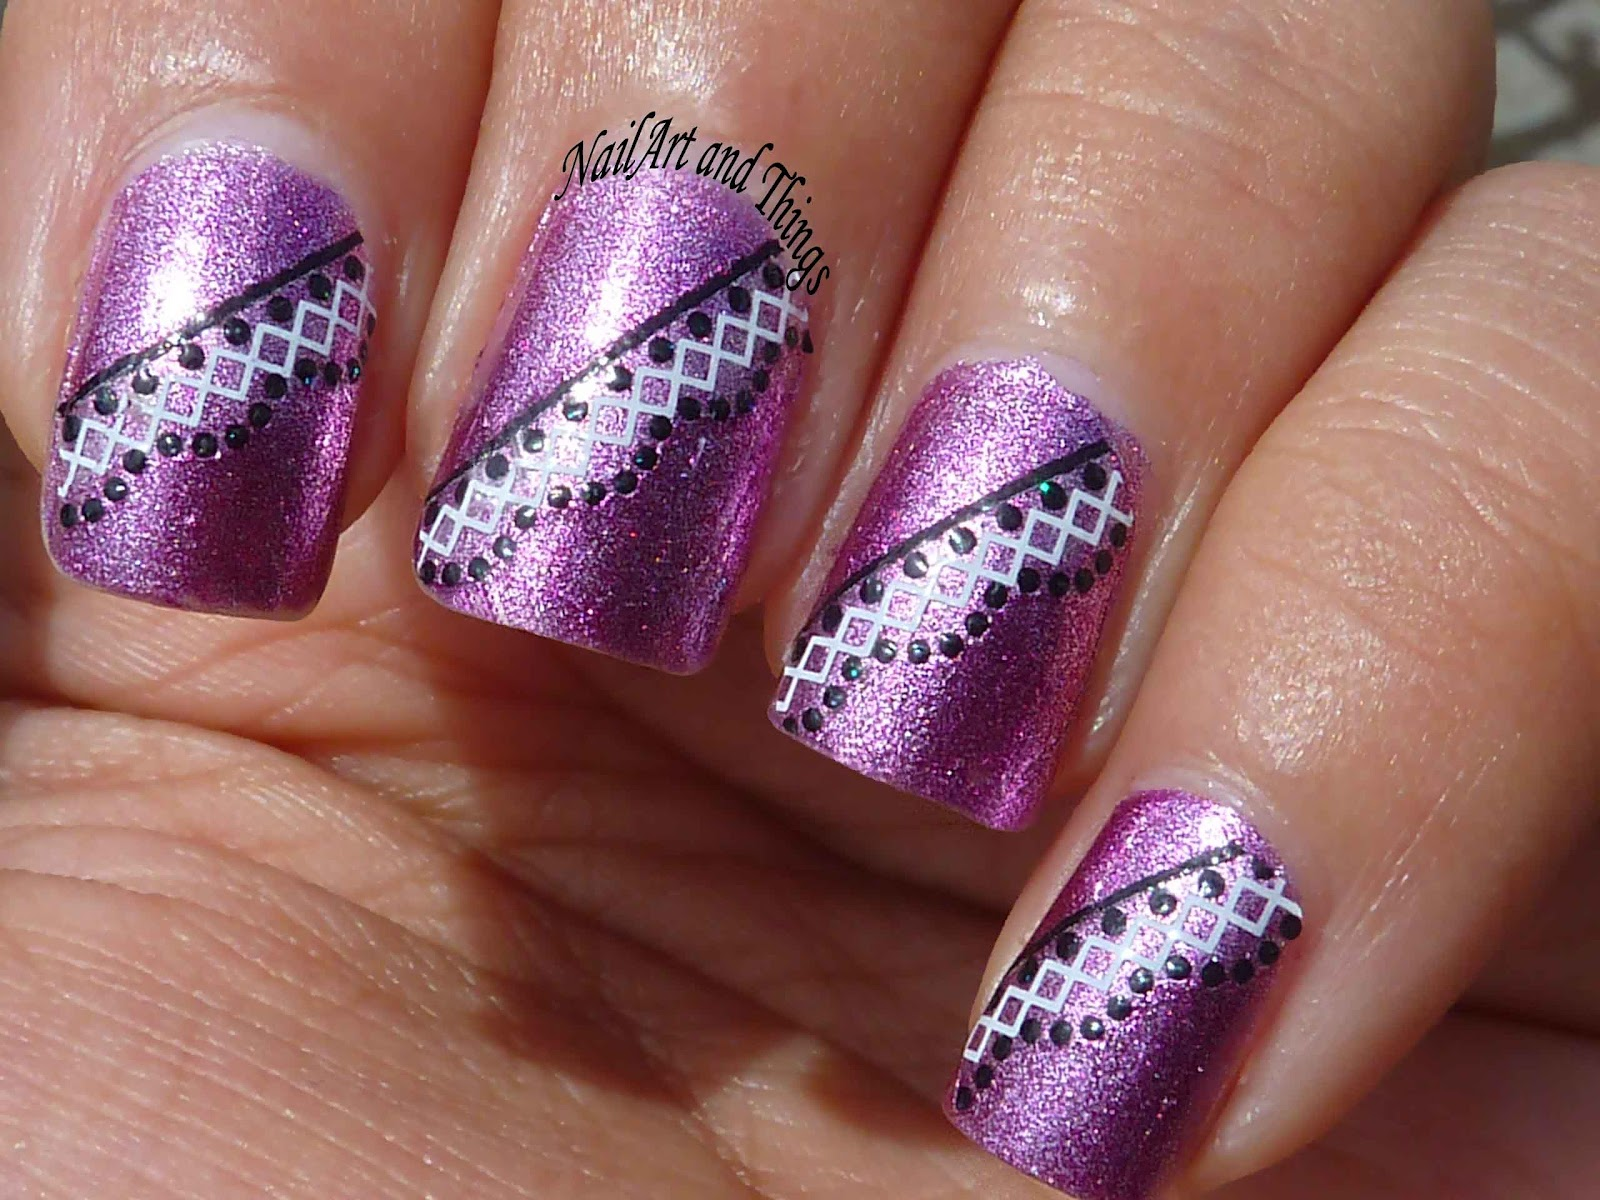 Nail Art: Nail Art & Manicures Damage Your Nails